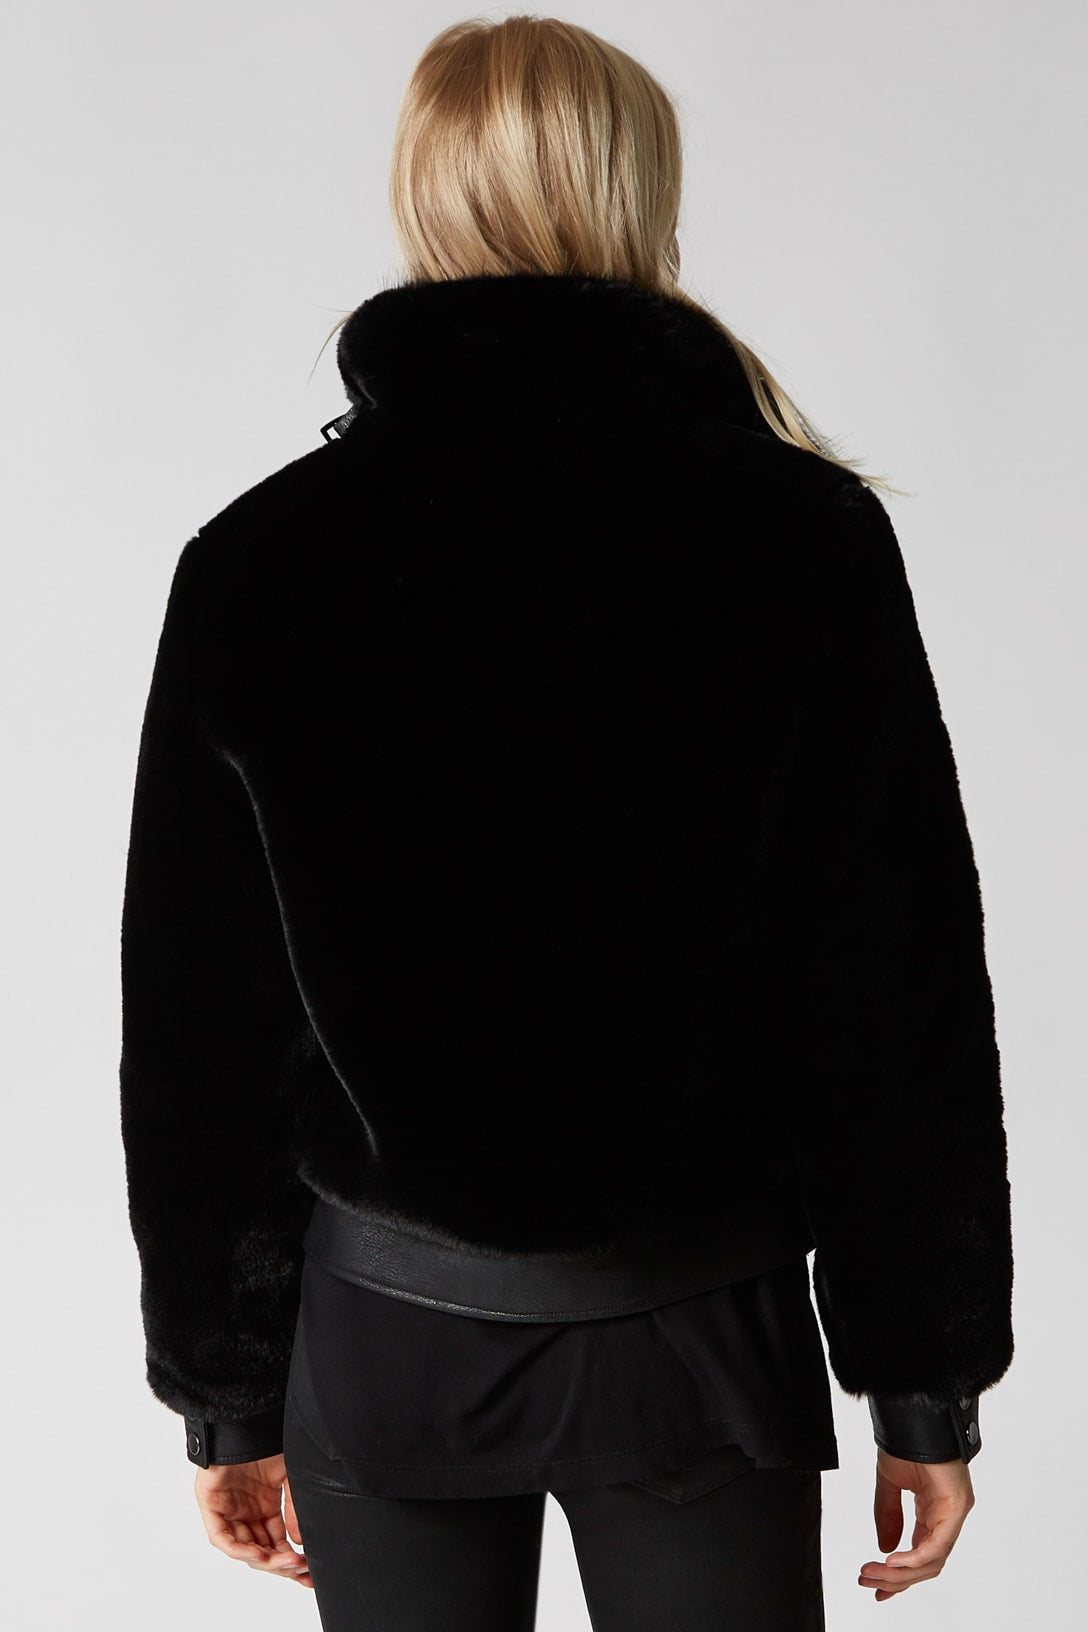 Black Noise Jacket